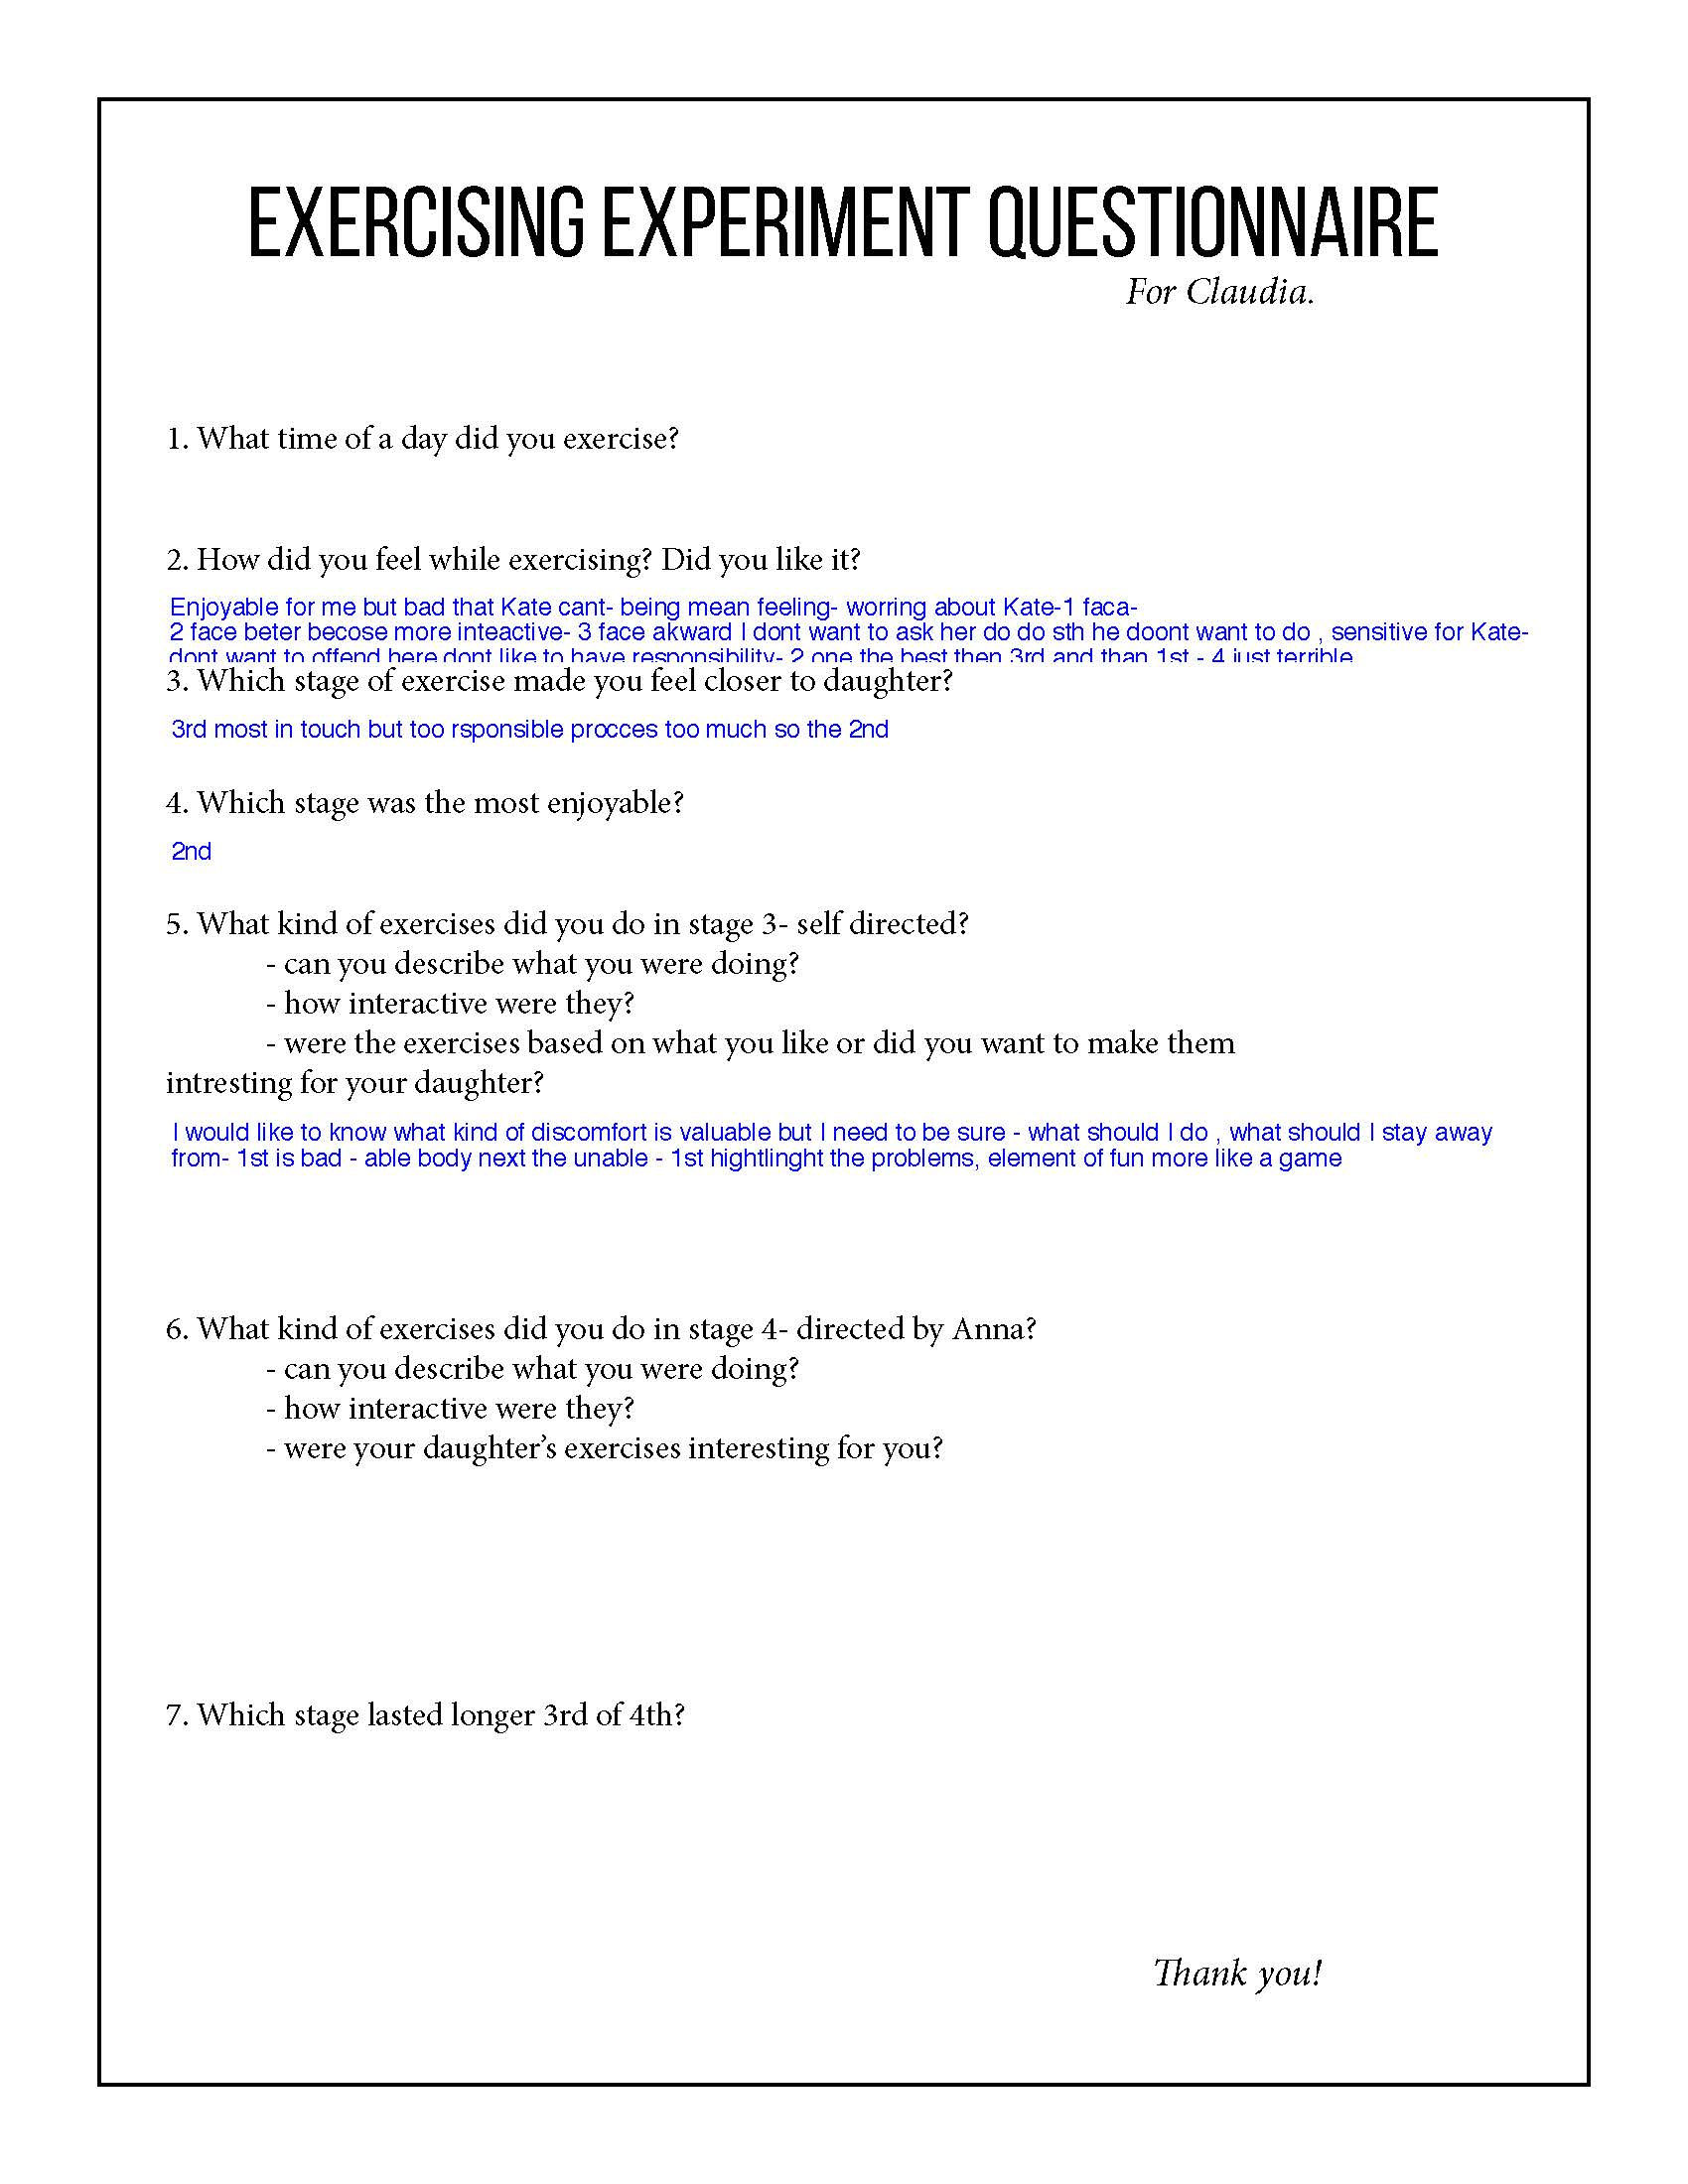 Questionnaire Hanna_Page_1.jpg